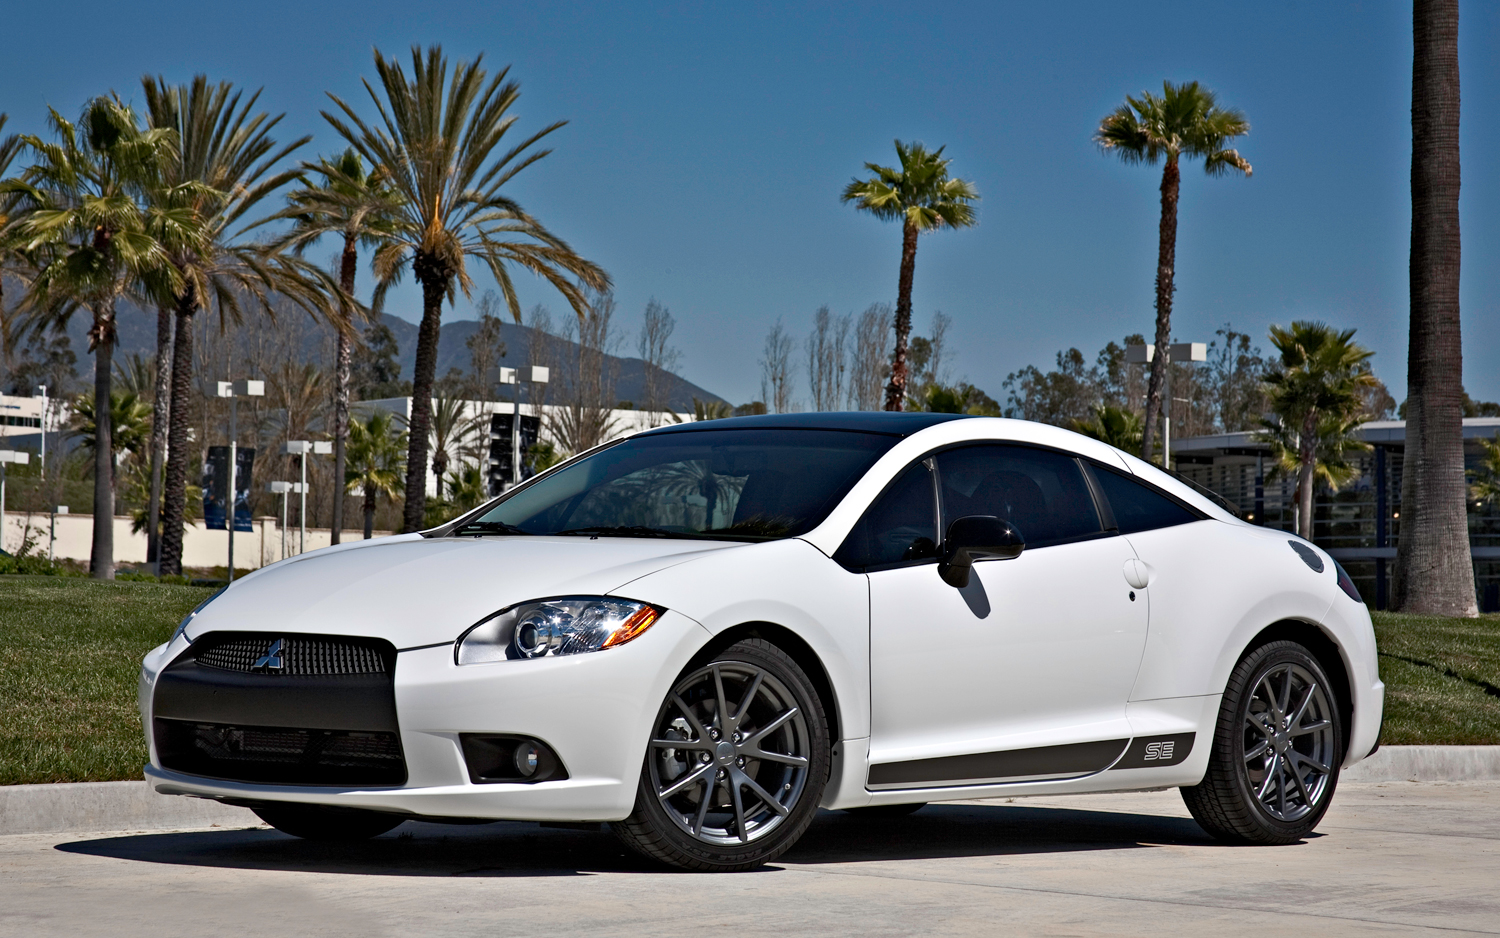 Pictures of mitsubishi eclipse iv 2008 #12